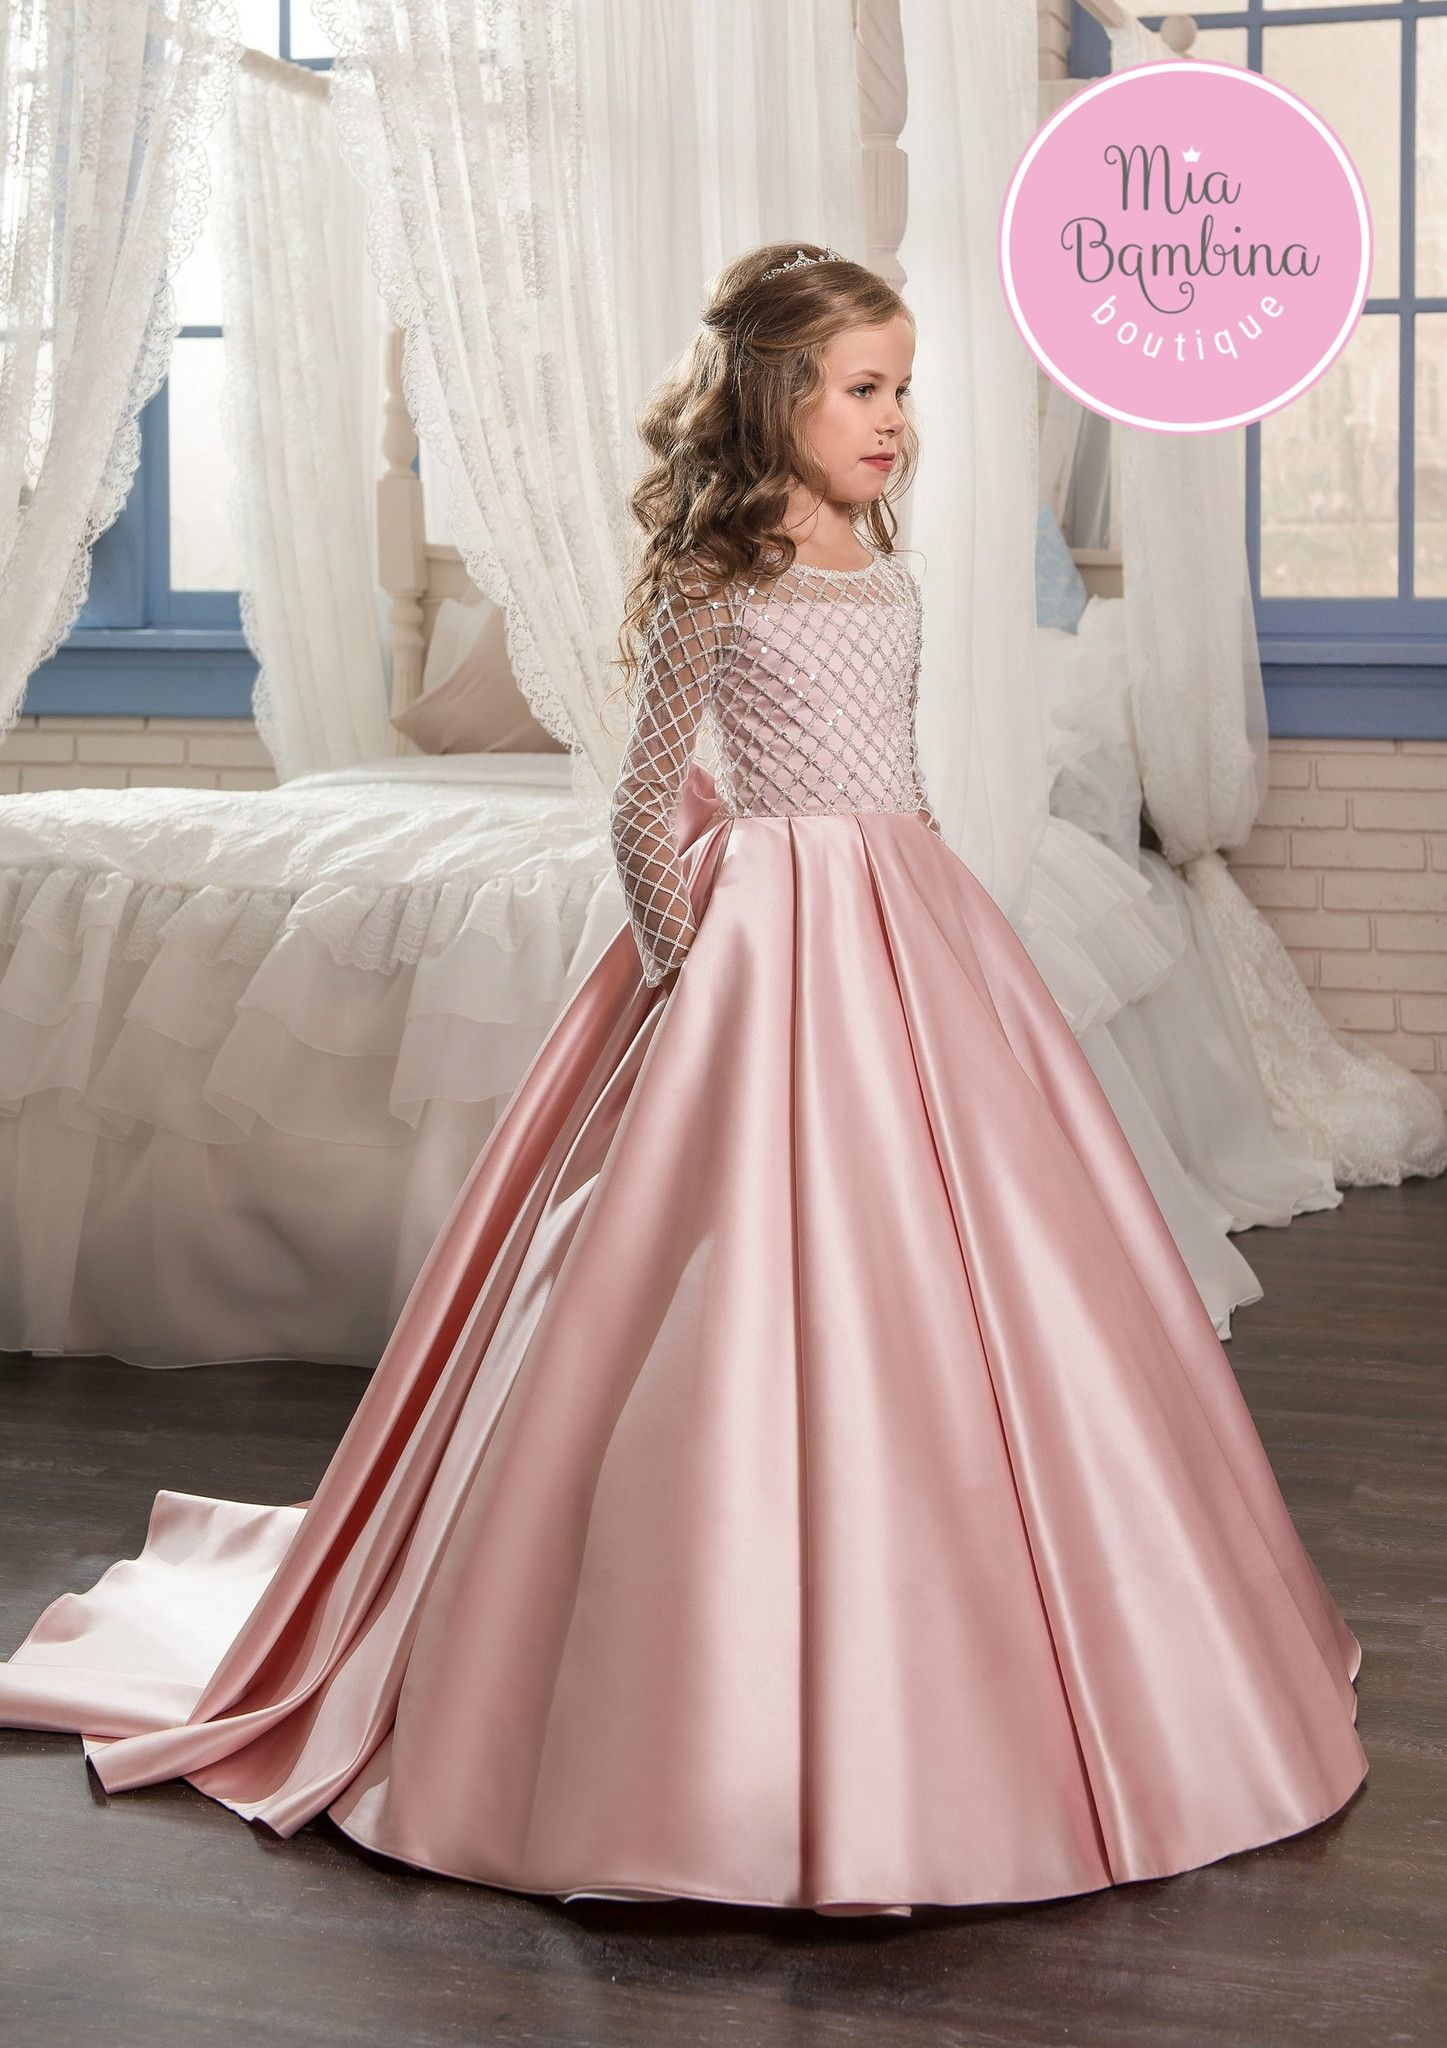 016c270e89 This chic Toronto flower girl dress is a long satin ball gown for  vintage-inspired weddings. It features a long-sleeved top embroidered with  textured ...